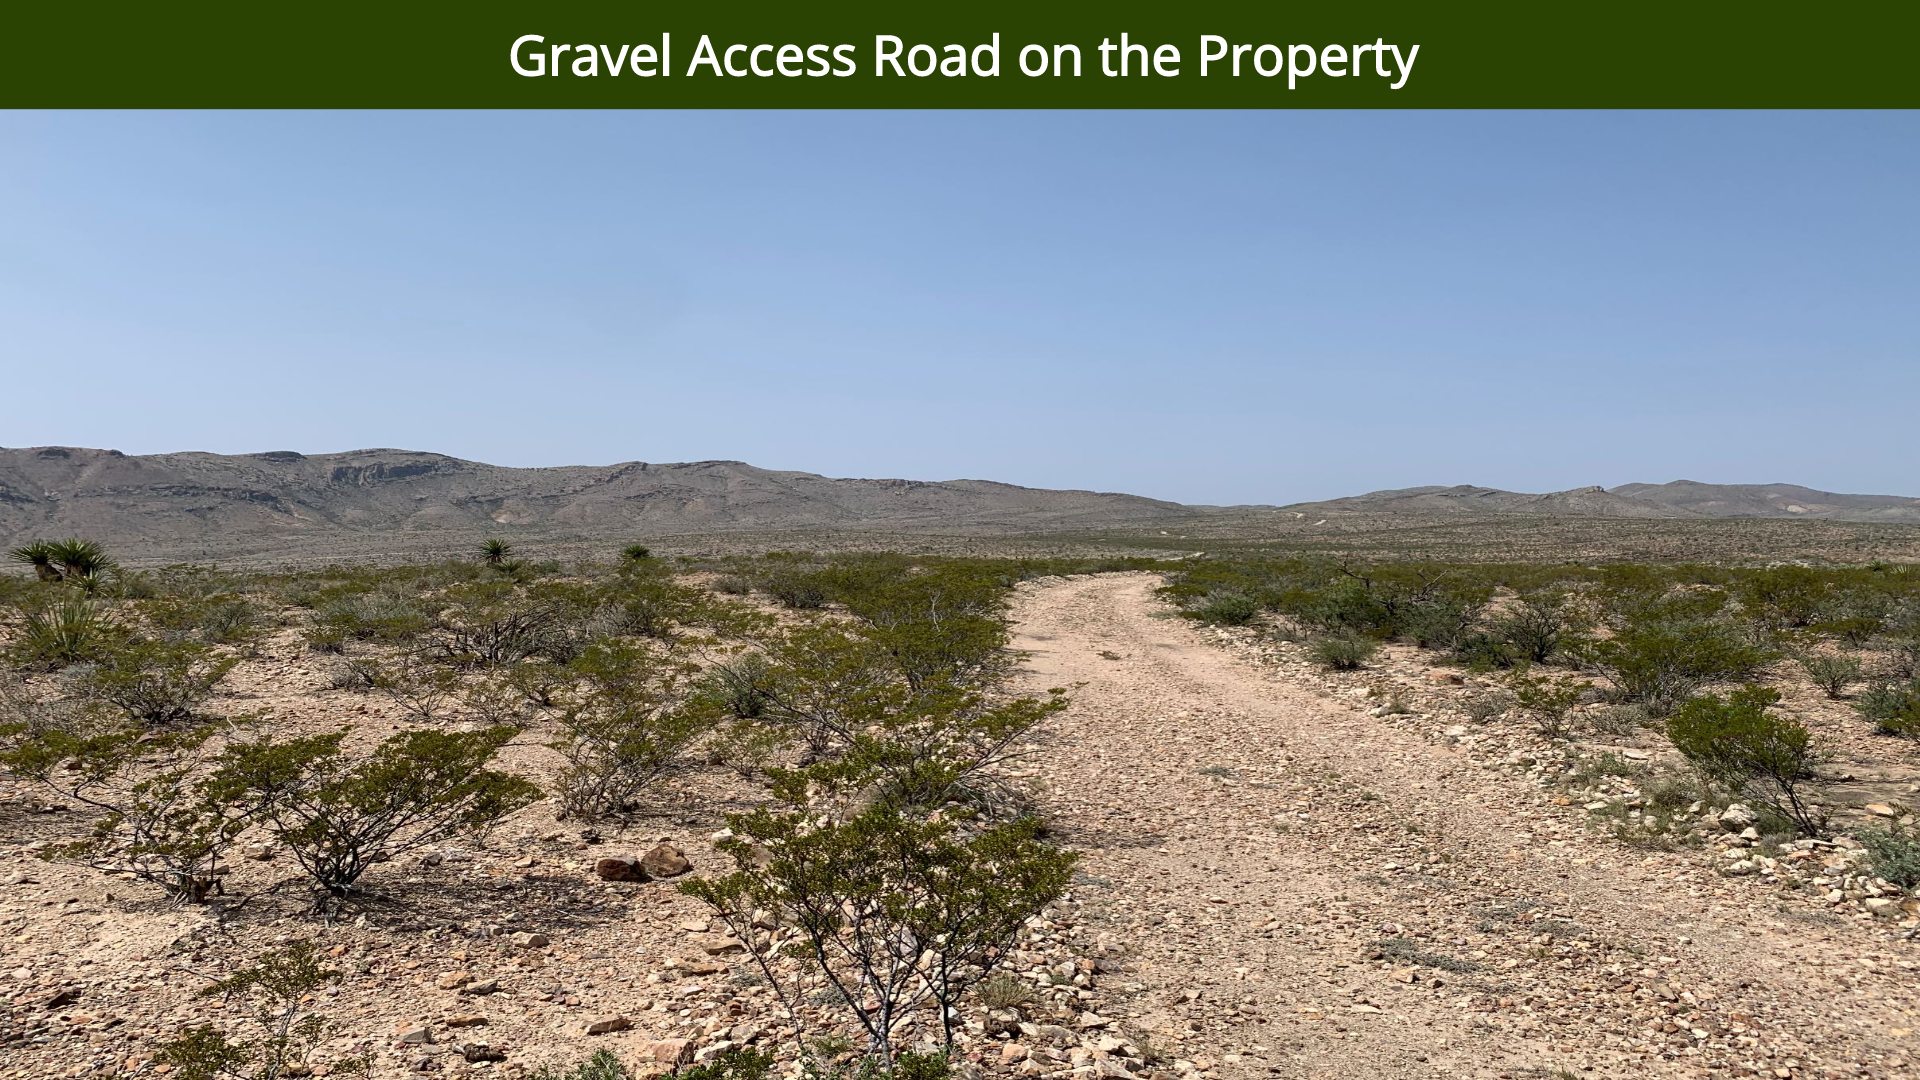 Gravel Access Road on the Property